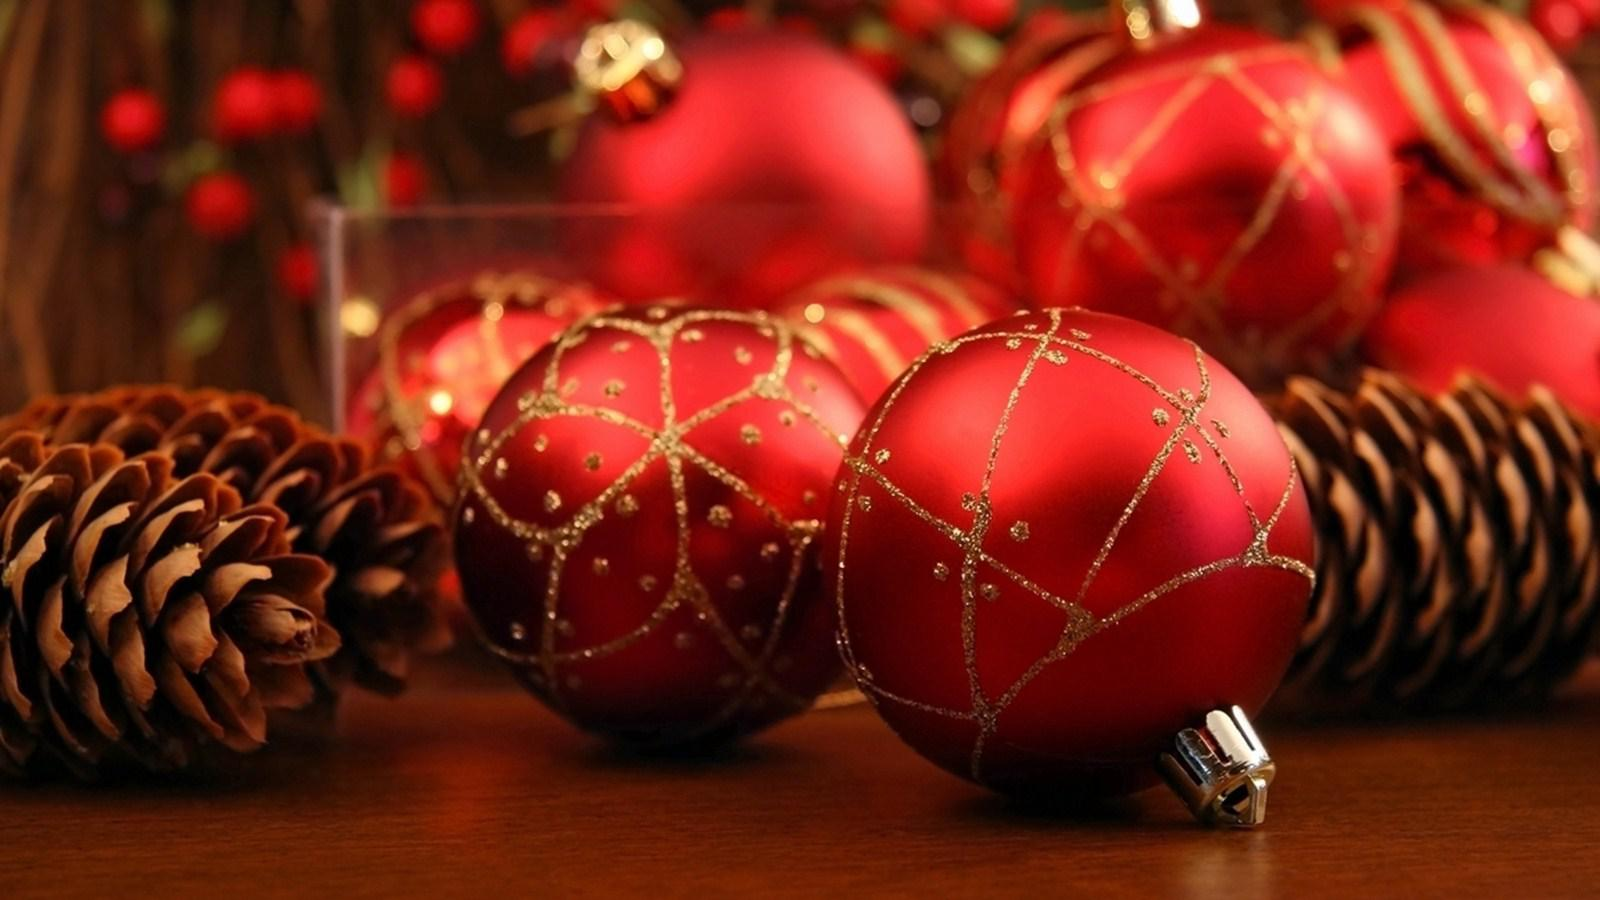 3d Moving Wallpapers City Lights Hd Christmas Ornaments Widescreen Wallpaper Download